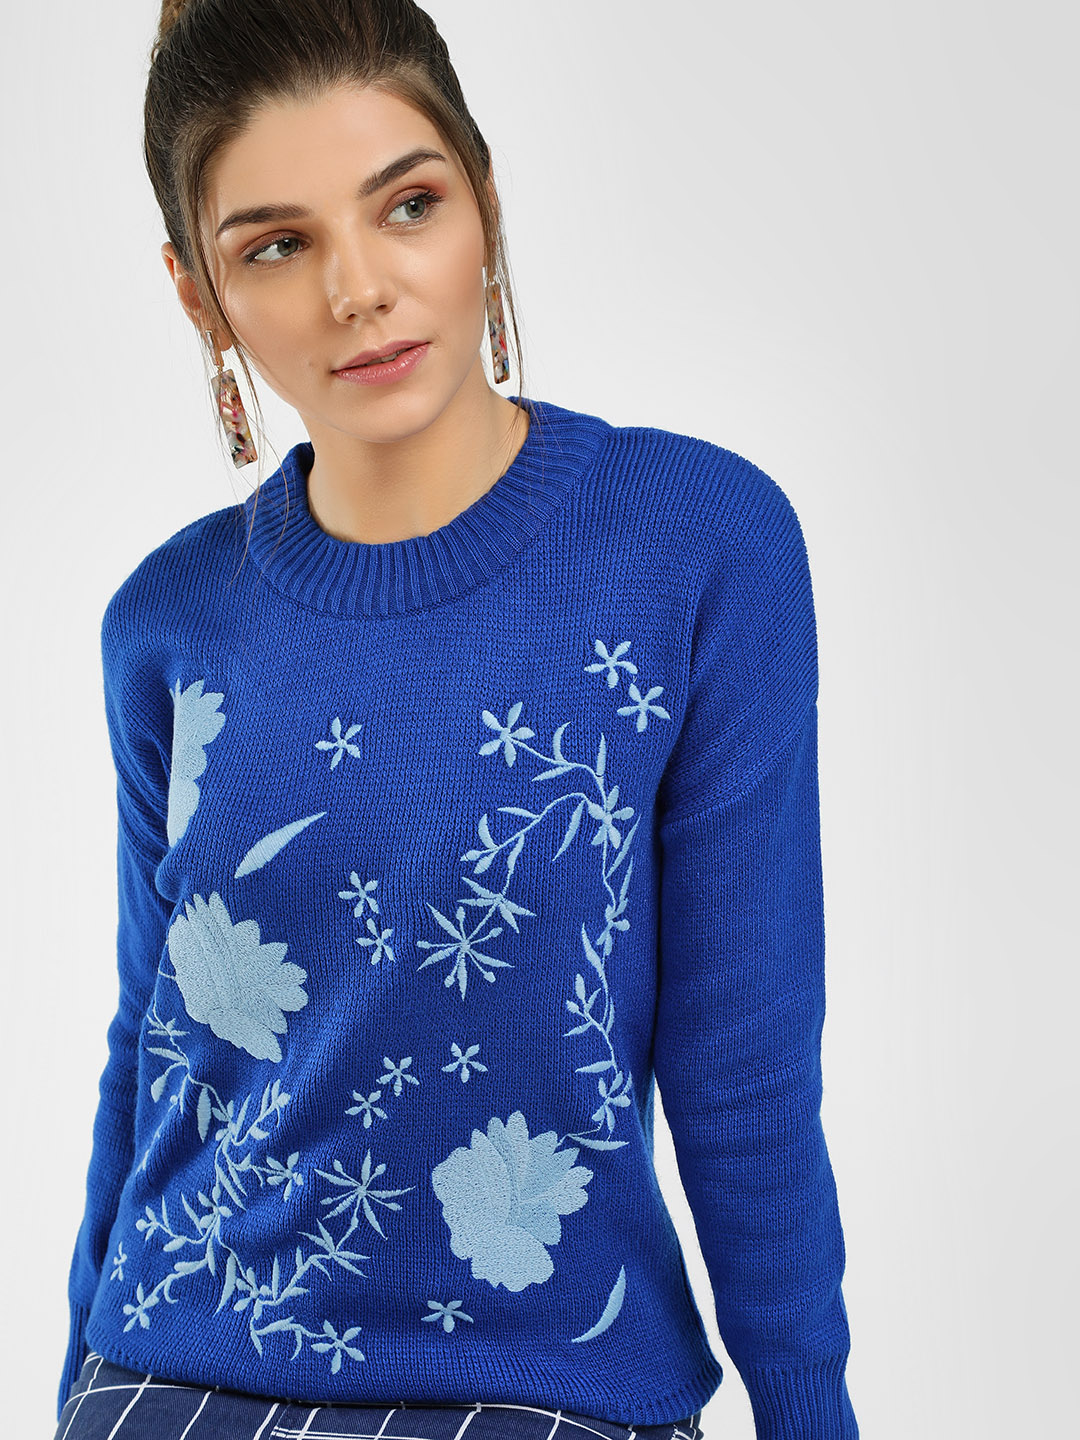 HEY Royal Blue Floral Embroidered Pullover 1